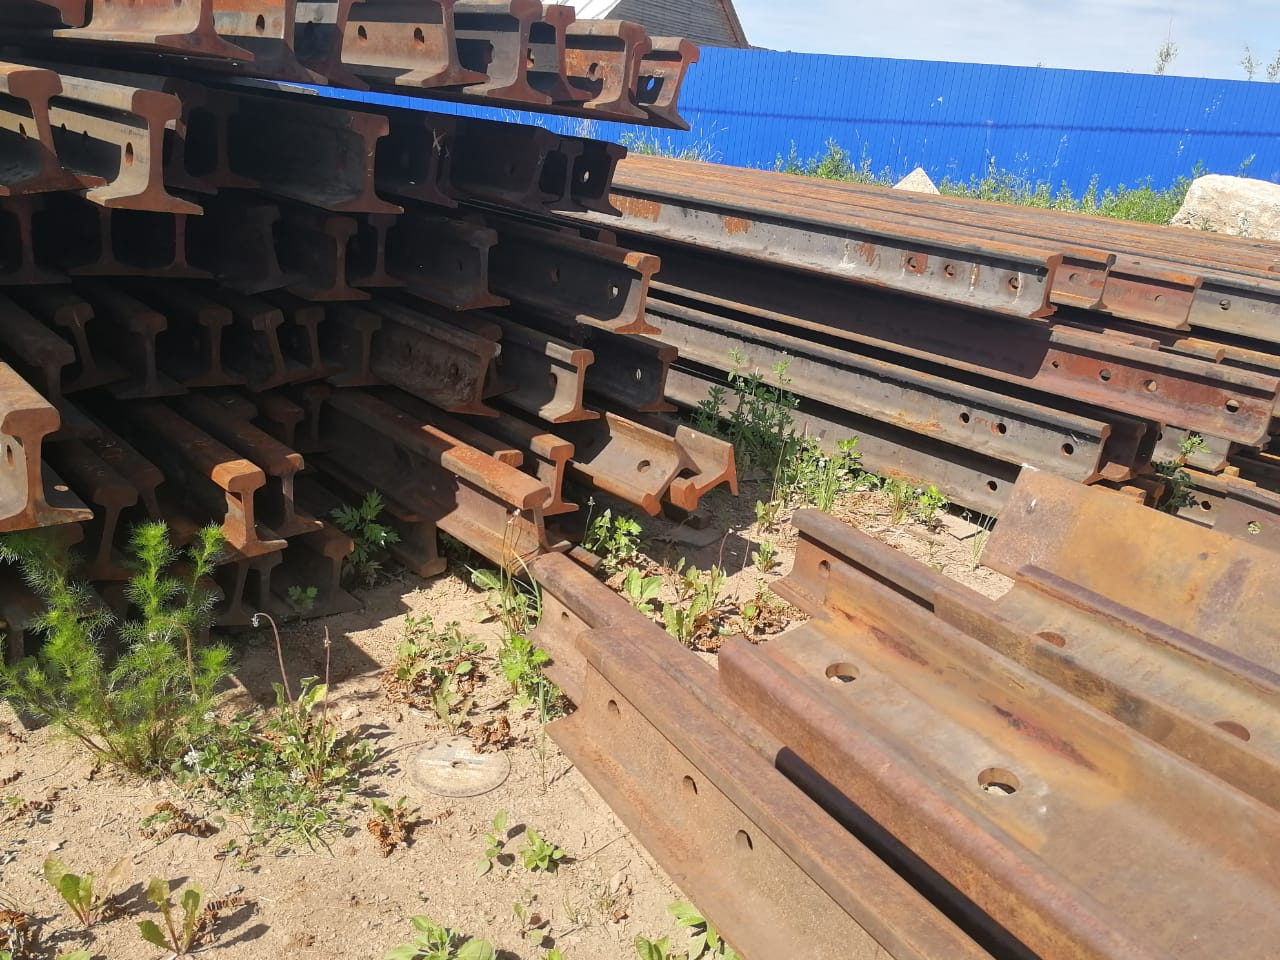 Offer  USED RAILS  , USED NEW  ,  Img-2035